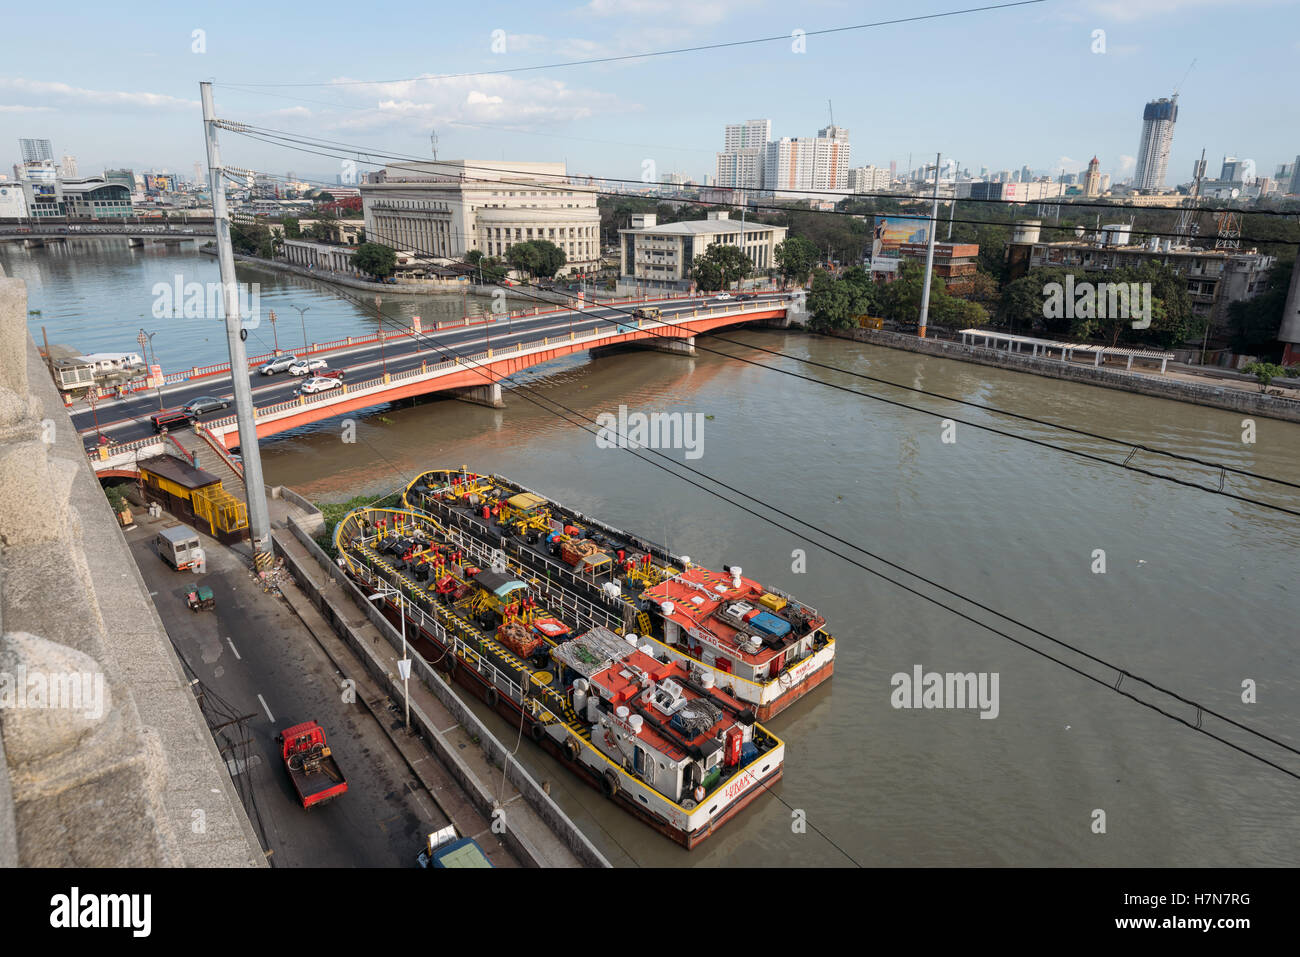 Manila, Philippines - February 20, 2016: Pasig river with bunker barges and with The Manila Central Post Office - Stock Image